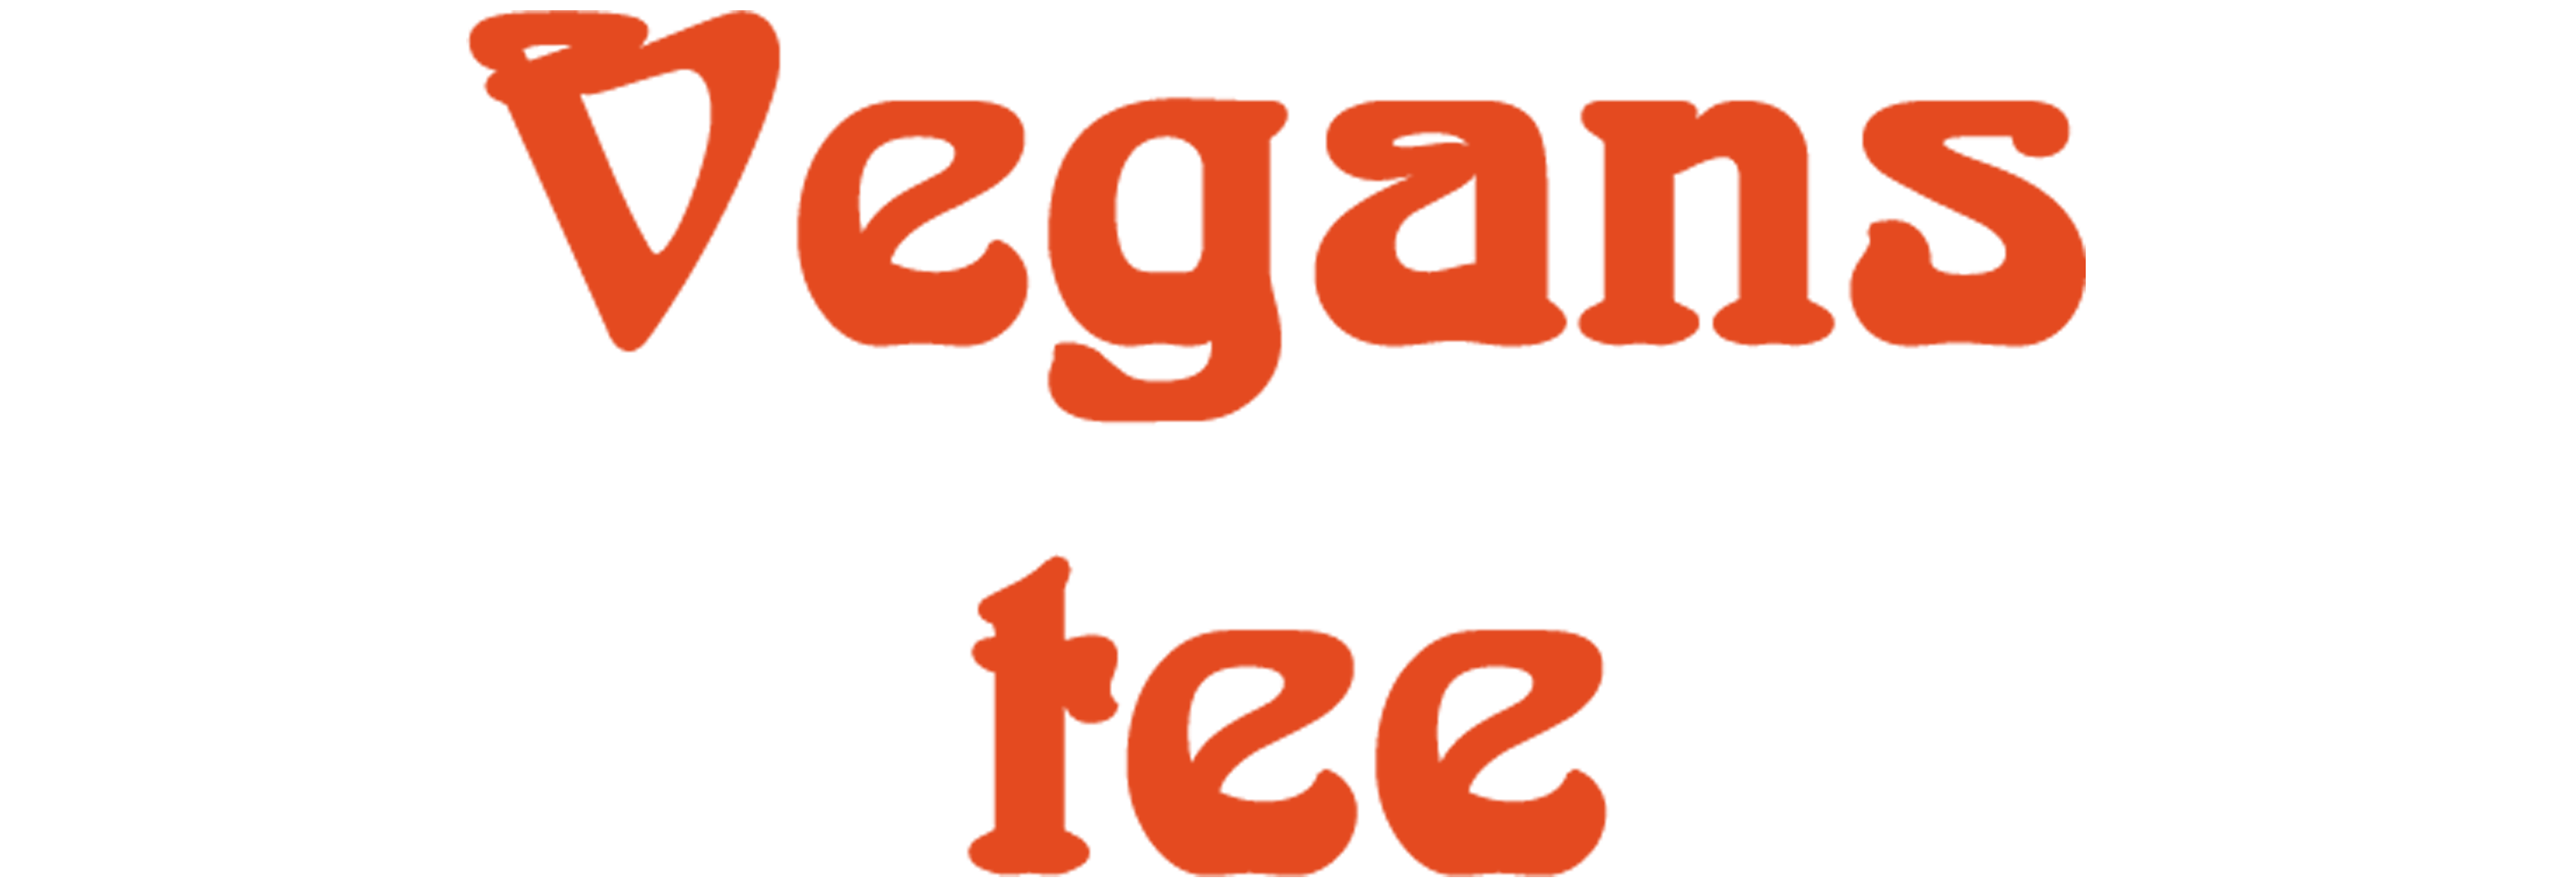 Veganstee – The best loving fashion – Loving t-shirt, hoodie, tank update for man and woman.